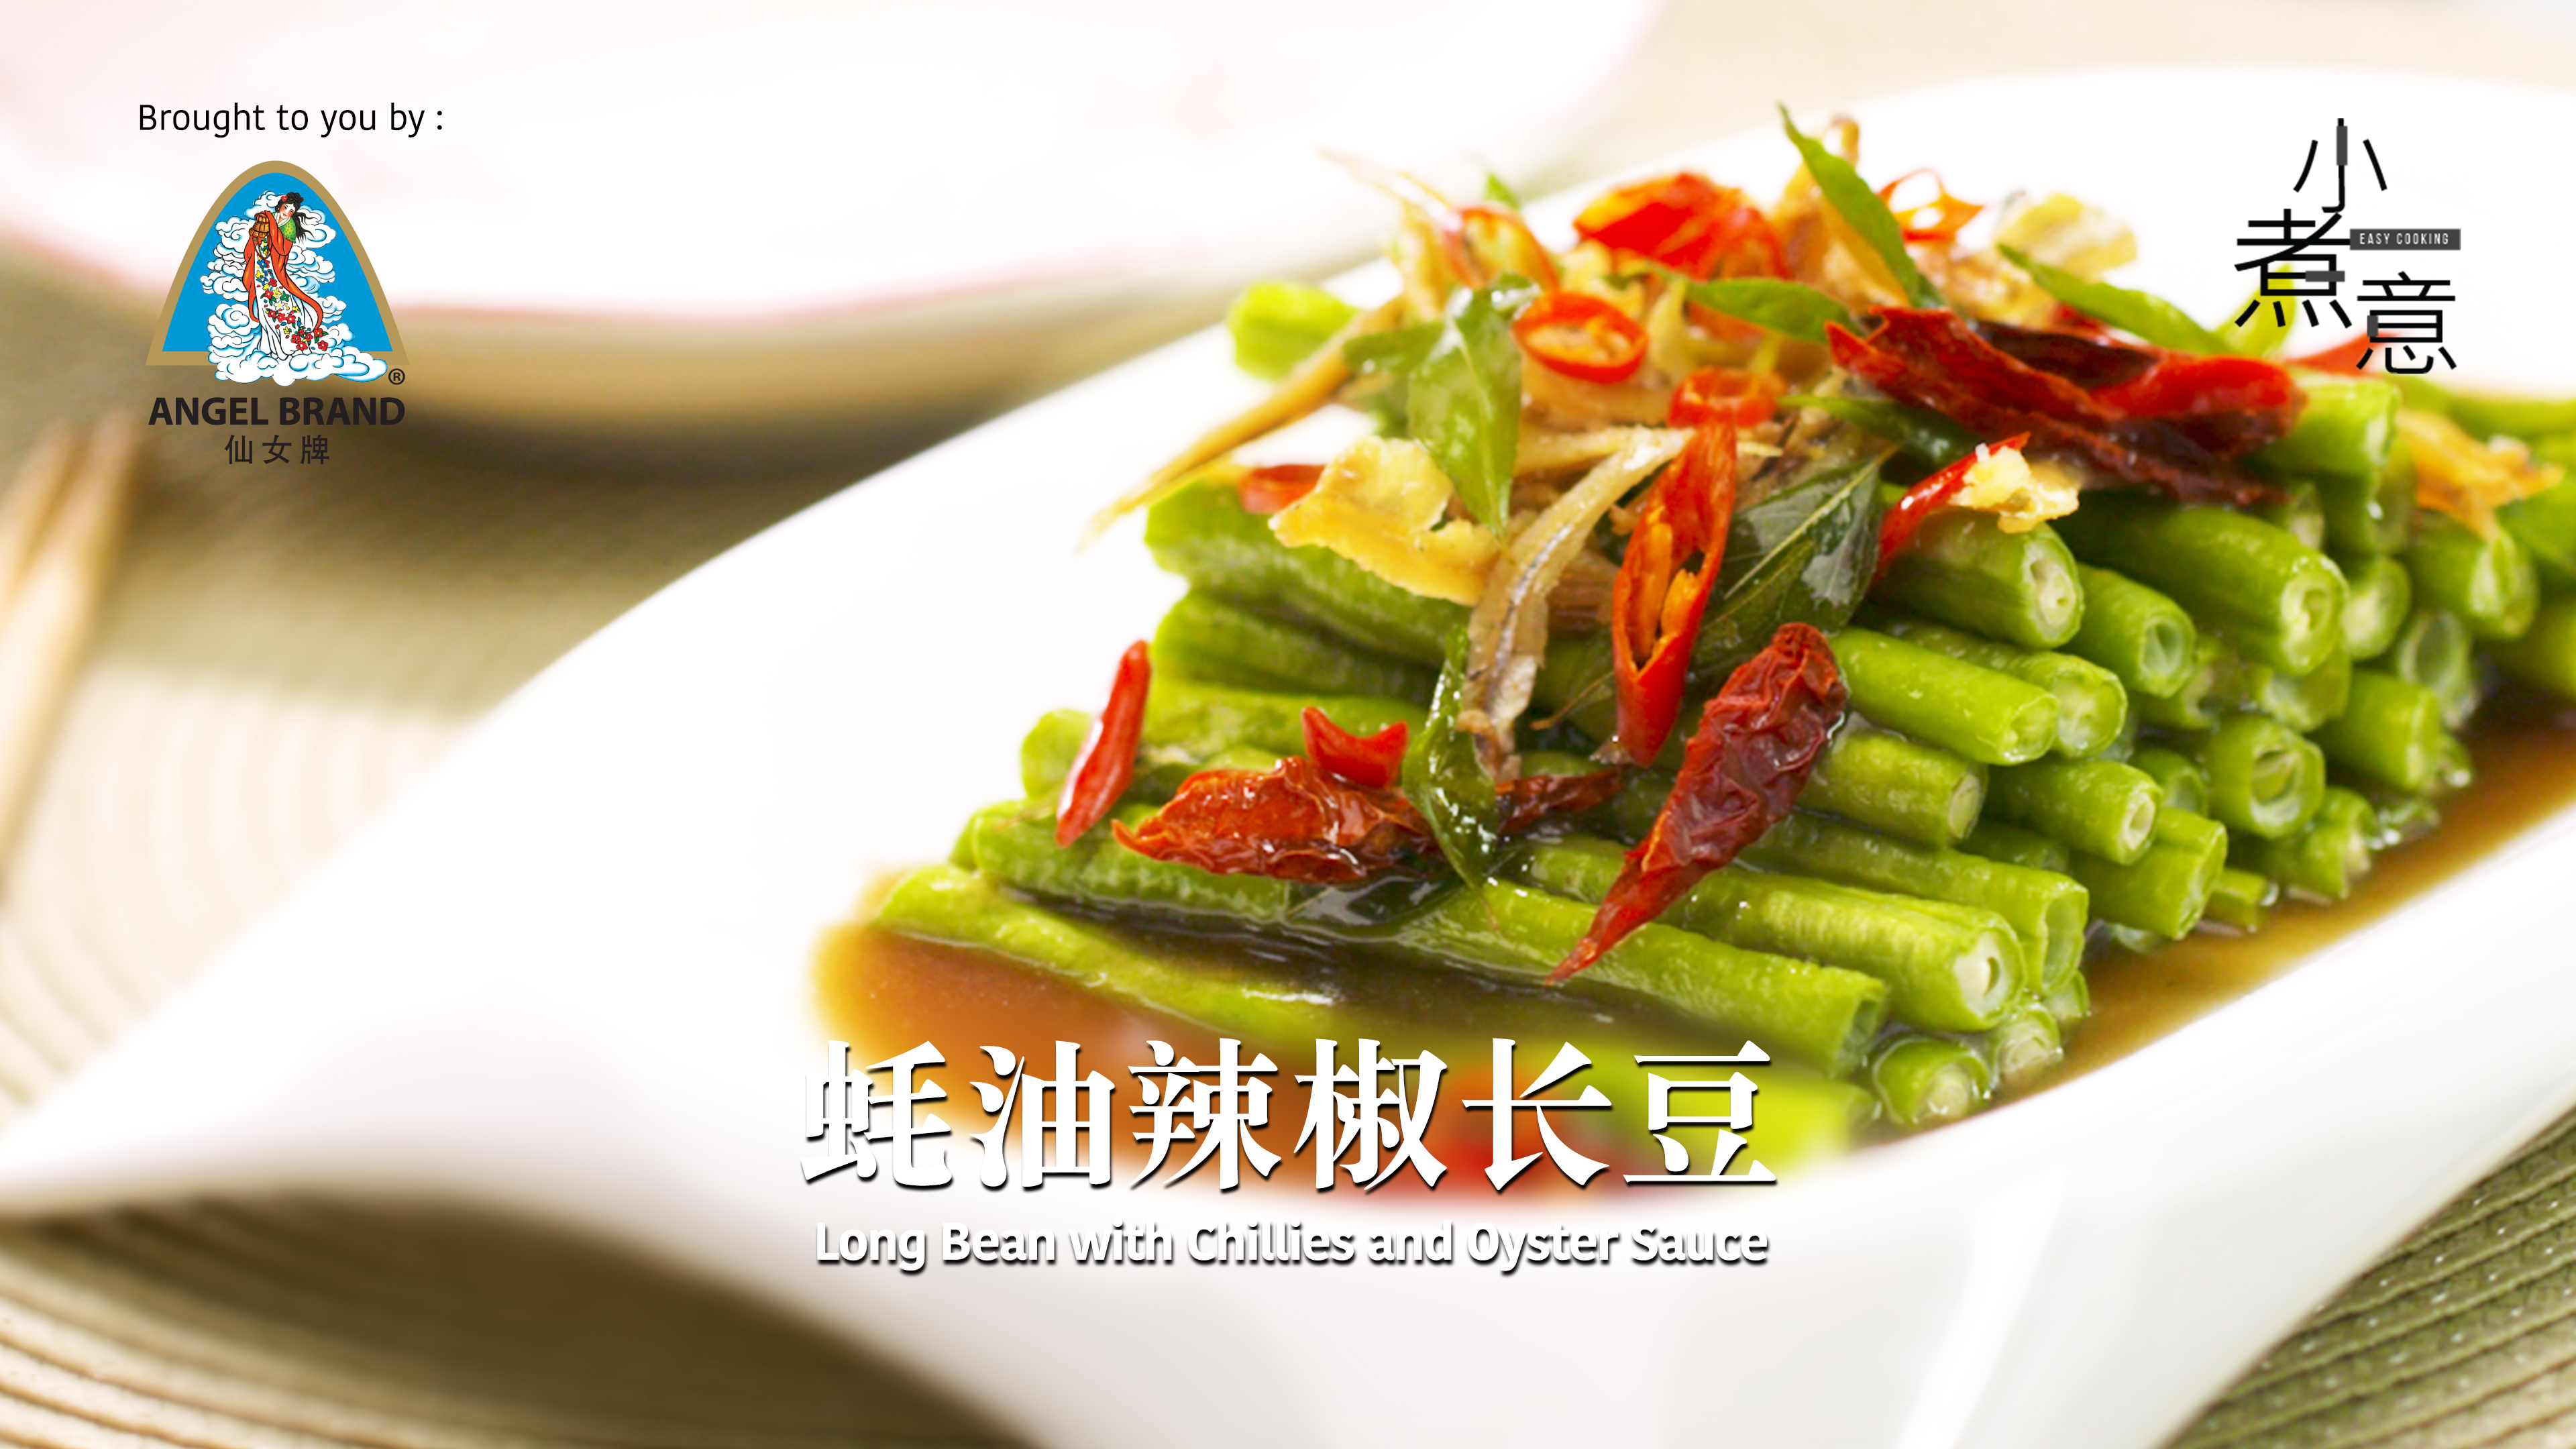 Long Beans with Chillies and Oyster Sauce